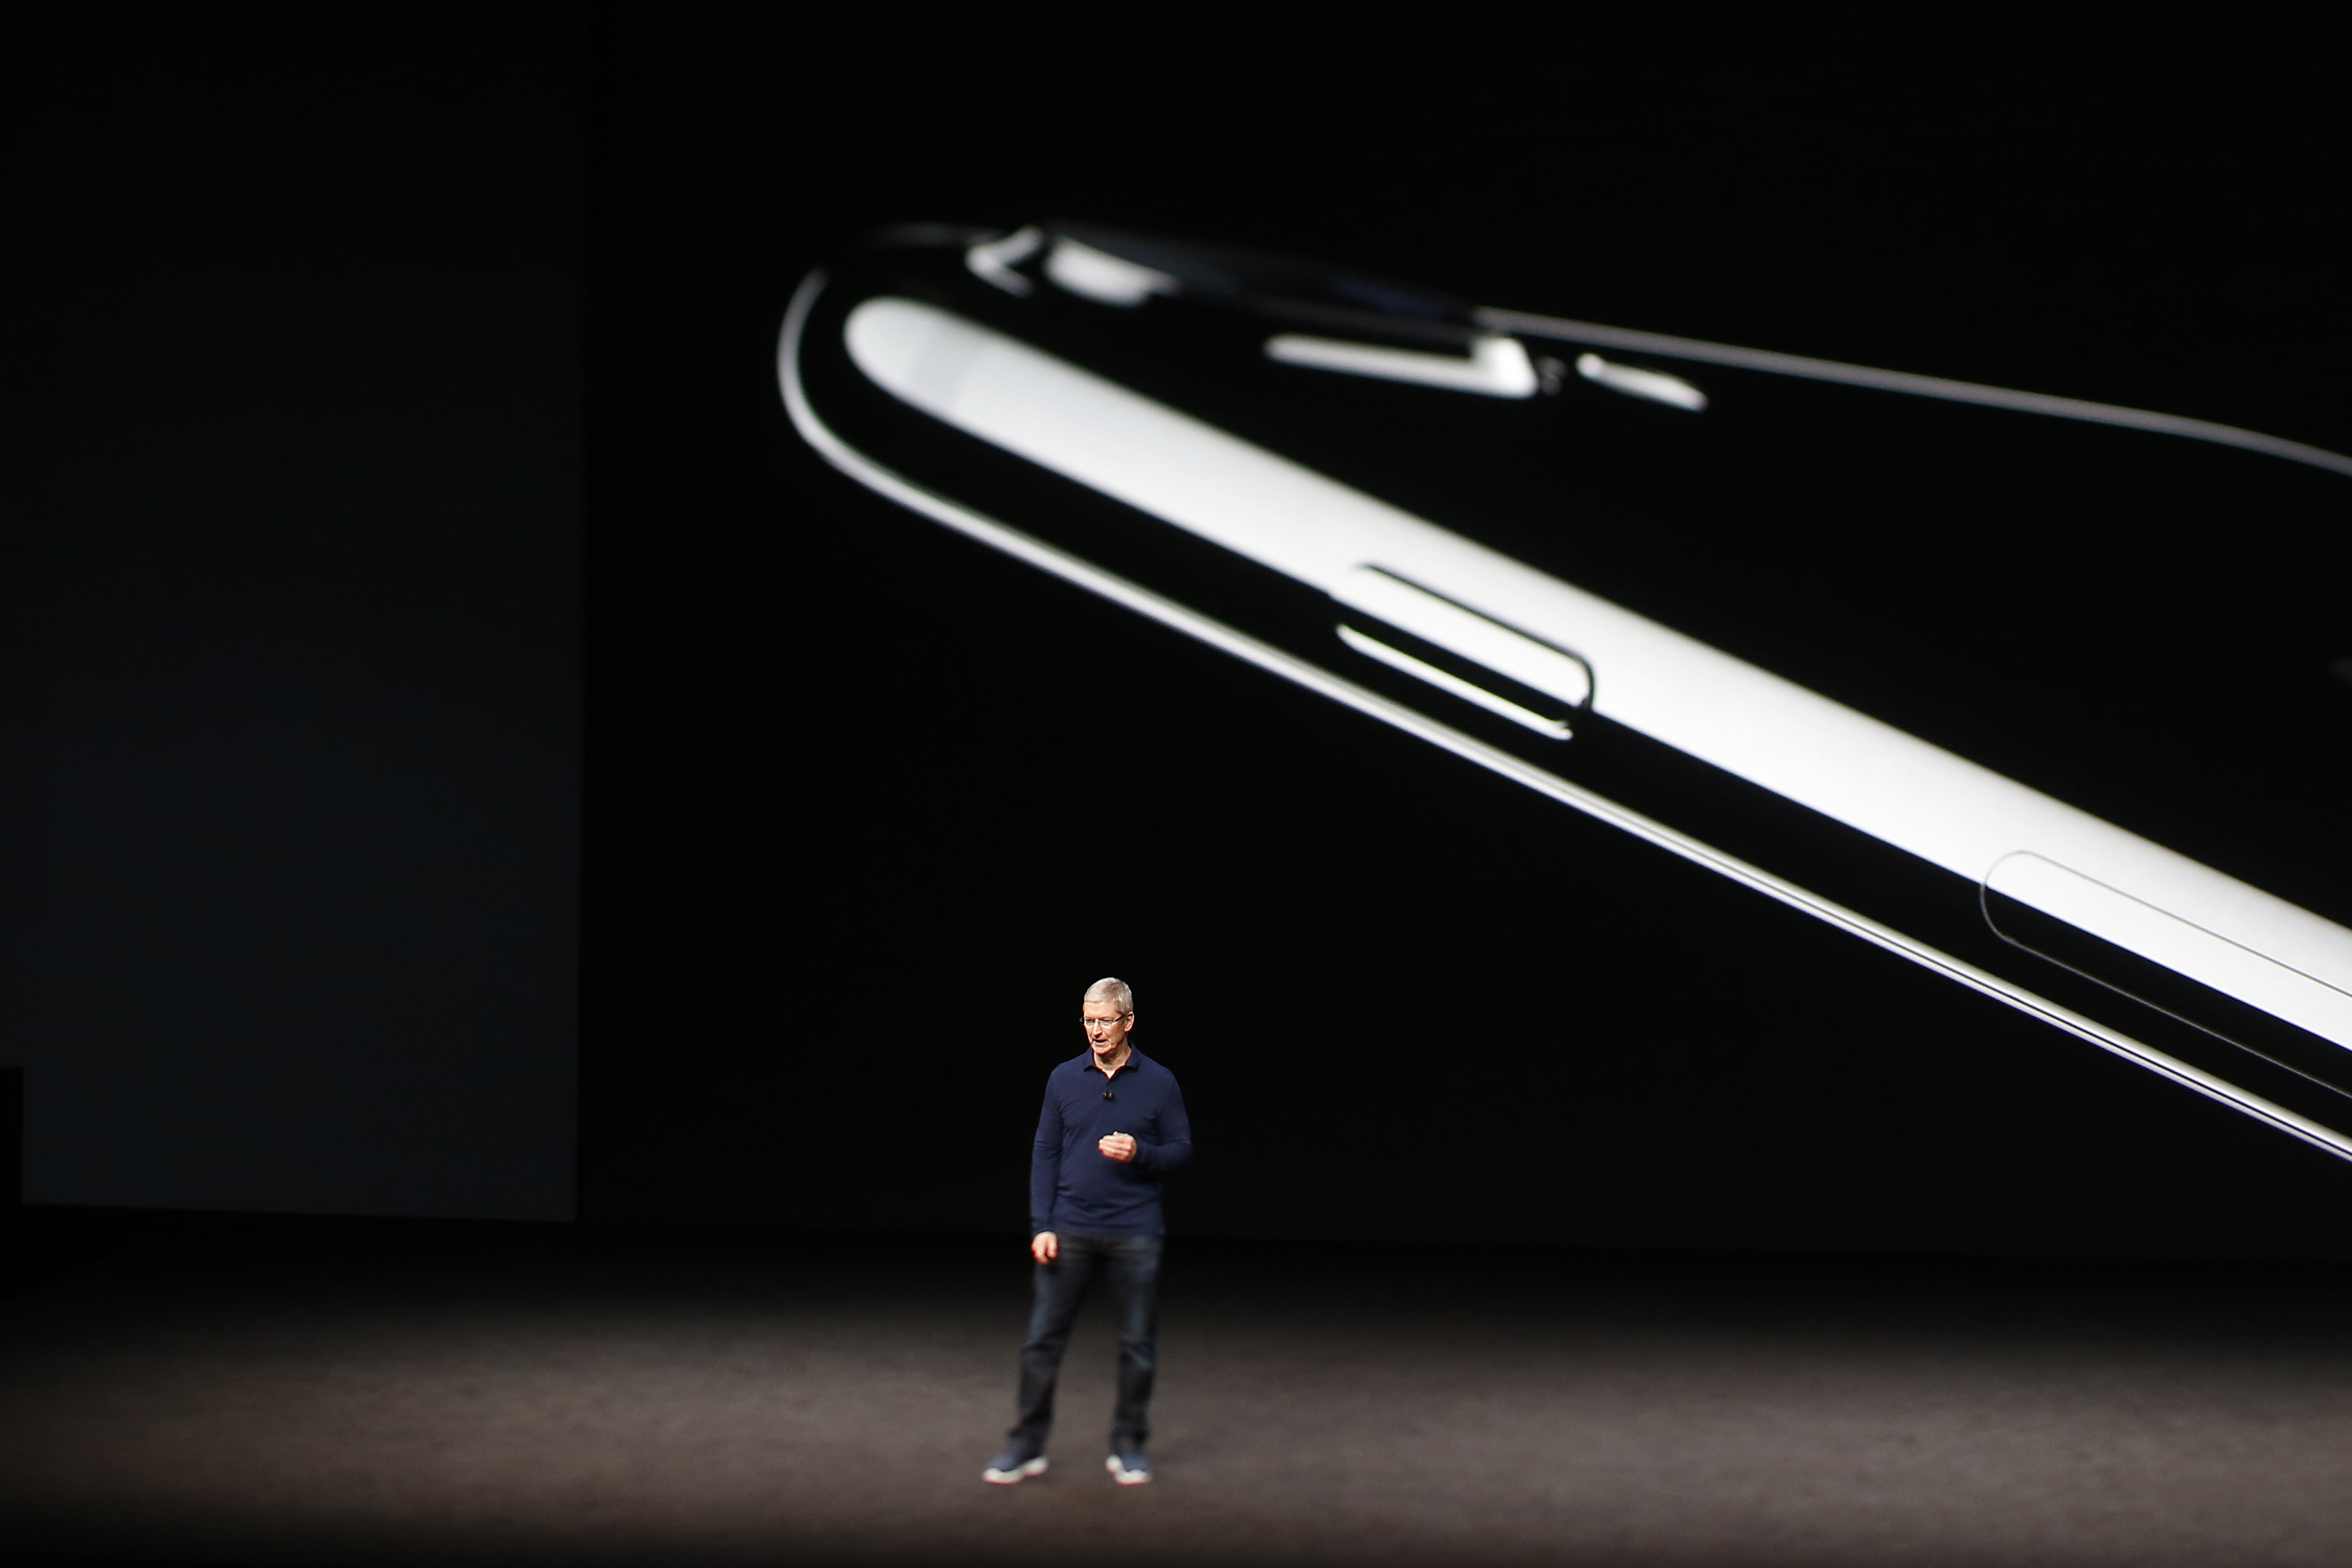 Apple CEO Tim Cook speaks on stage during a launch event on September 7, 2016 in San Francisco, California.